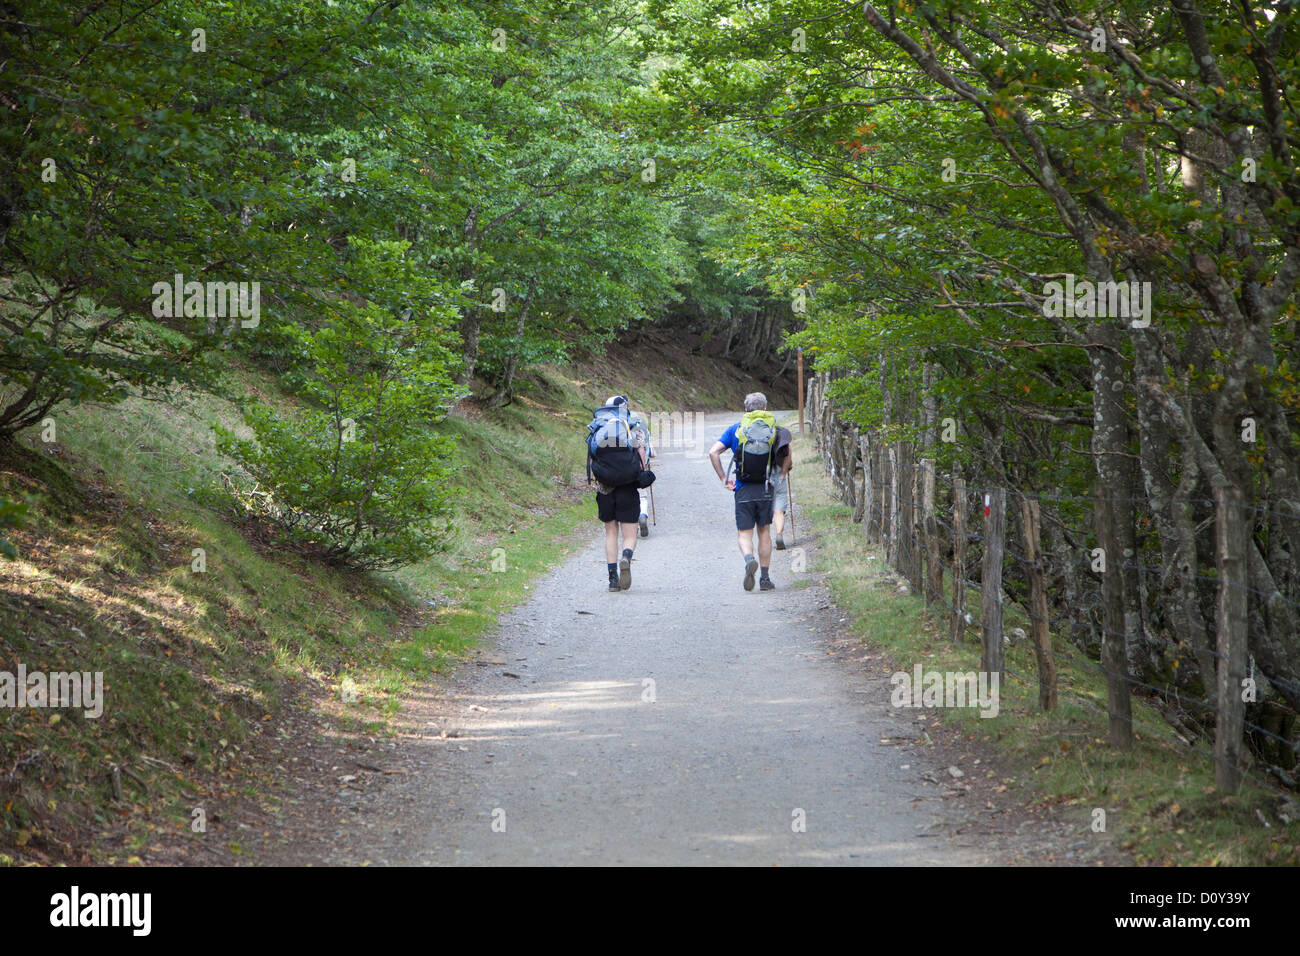 Pilgrims walking a pilgrimage route from St. Jean Pied de Port to Ronscavelles Spain, the French Route of the Camino - Stock Image